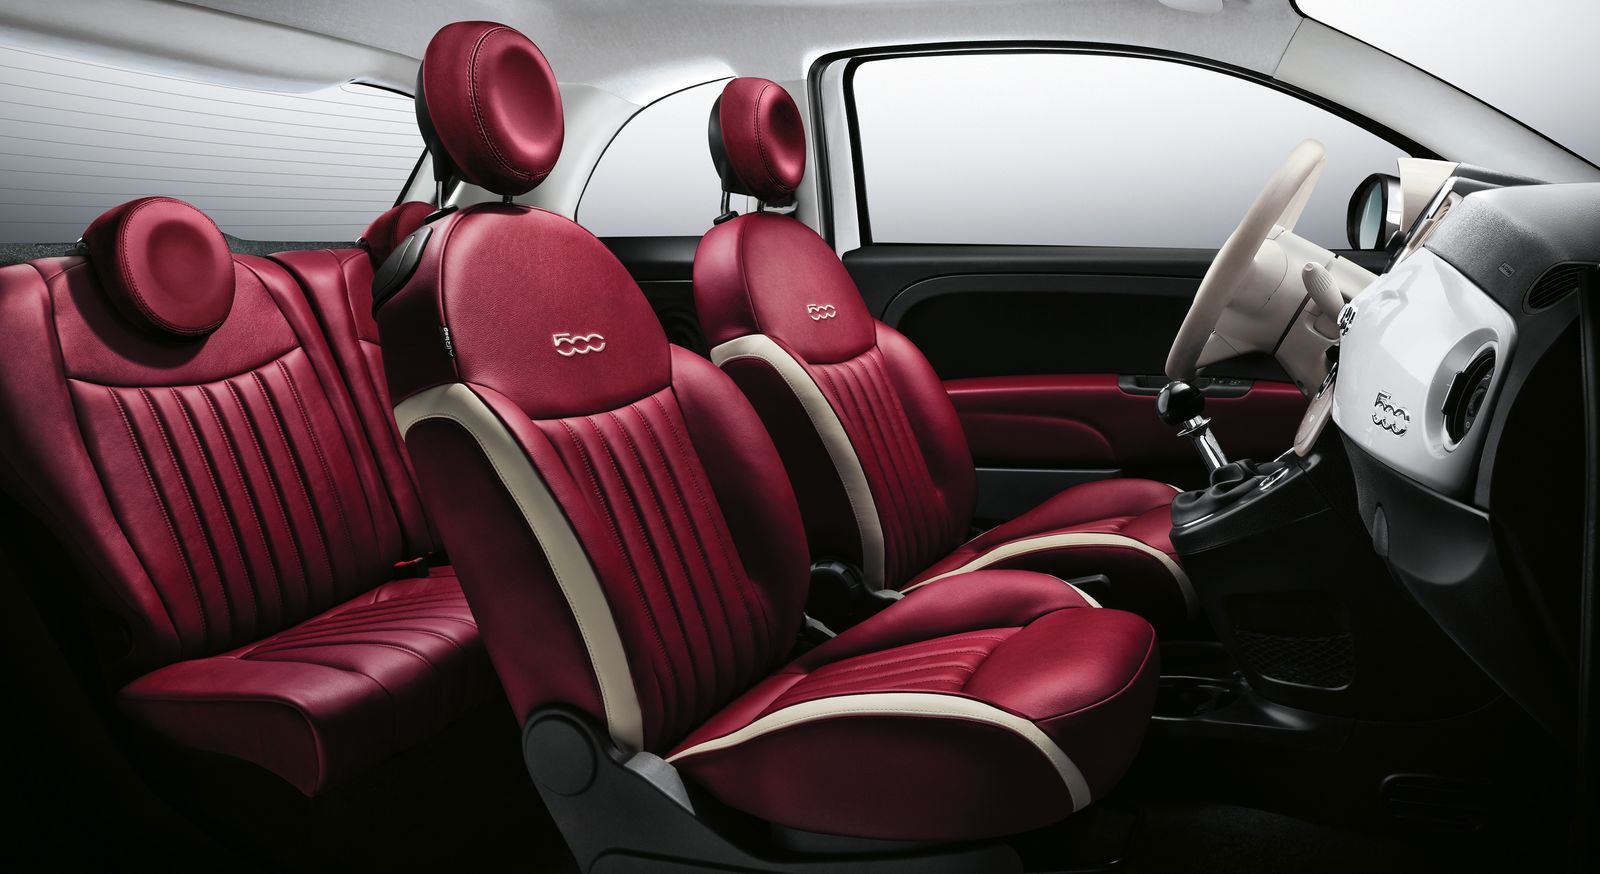 fiat 500 sizes and dimensions guide carwow. Black Bedroom Furniture Sets. Home Design Ideas